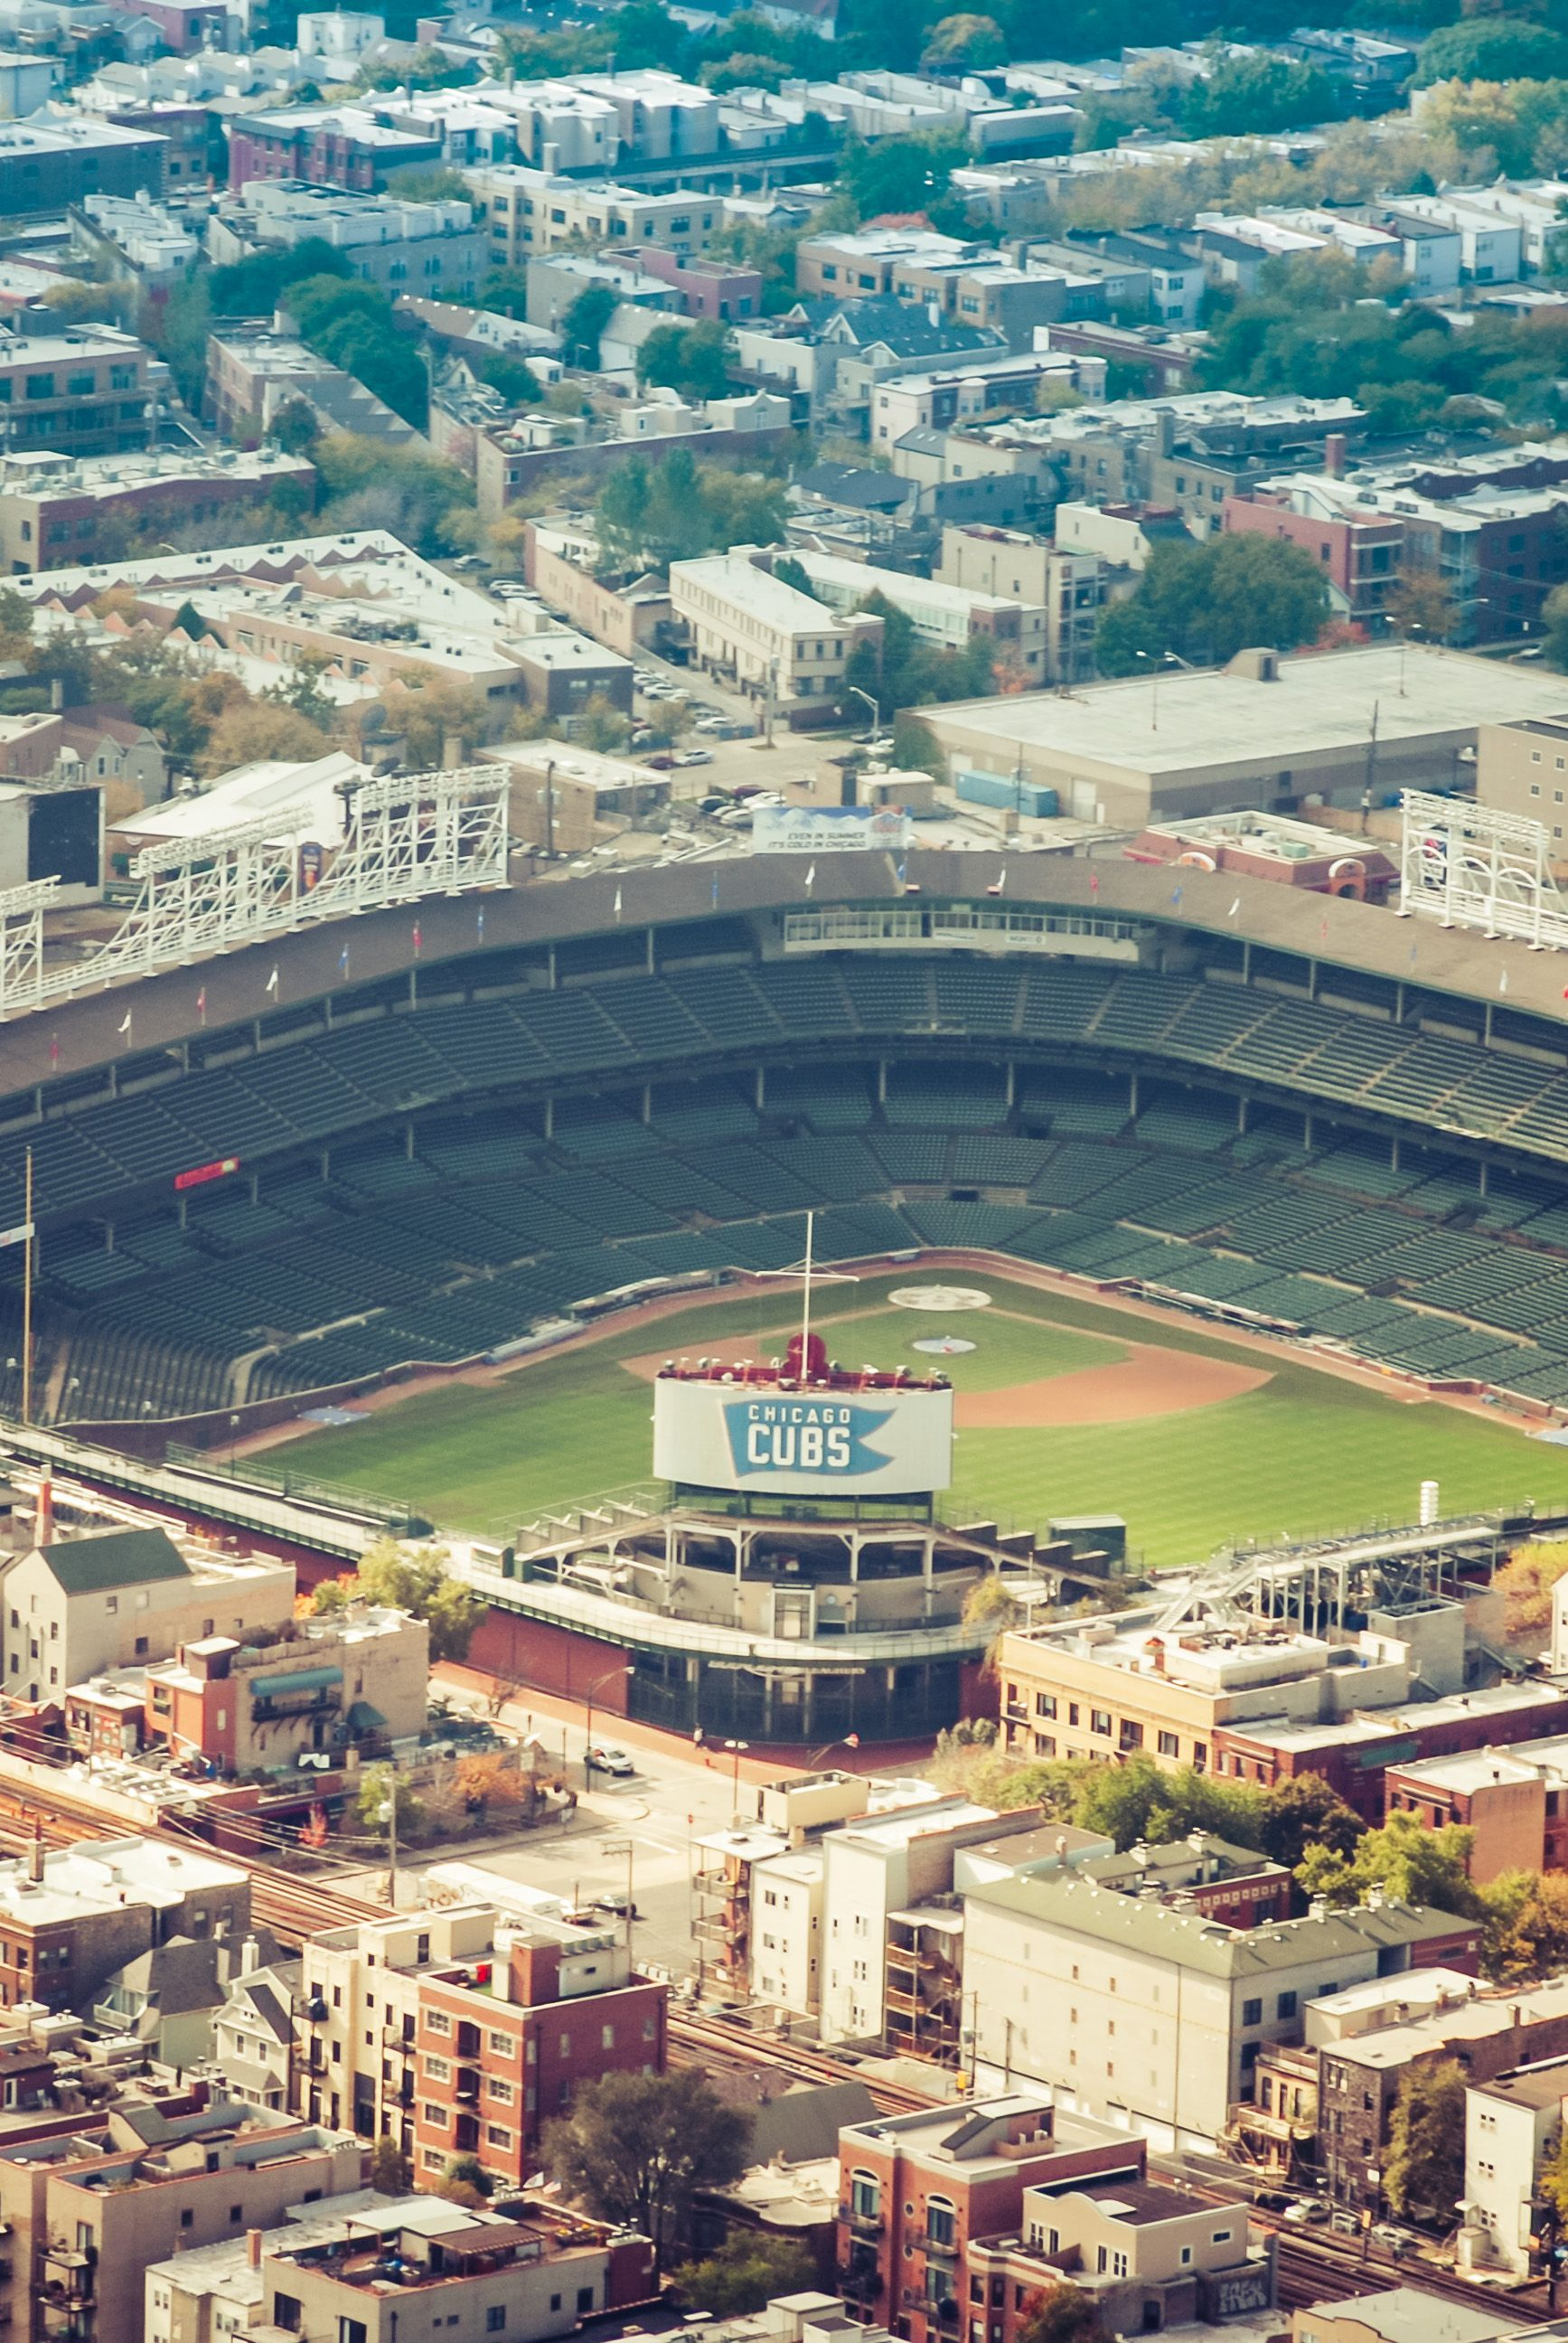 Photo Print Of Wrigley Field Chicago Cubs Wall Art Chicago Etsy In 2021 Wrigley Field Chicago Wrigley Field Chicago Photography